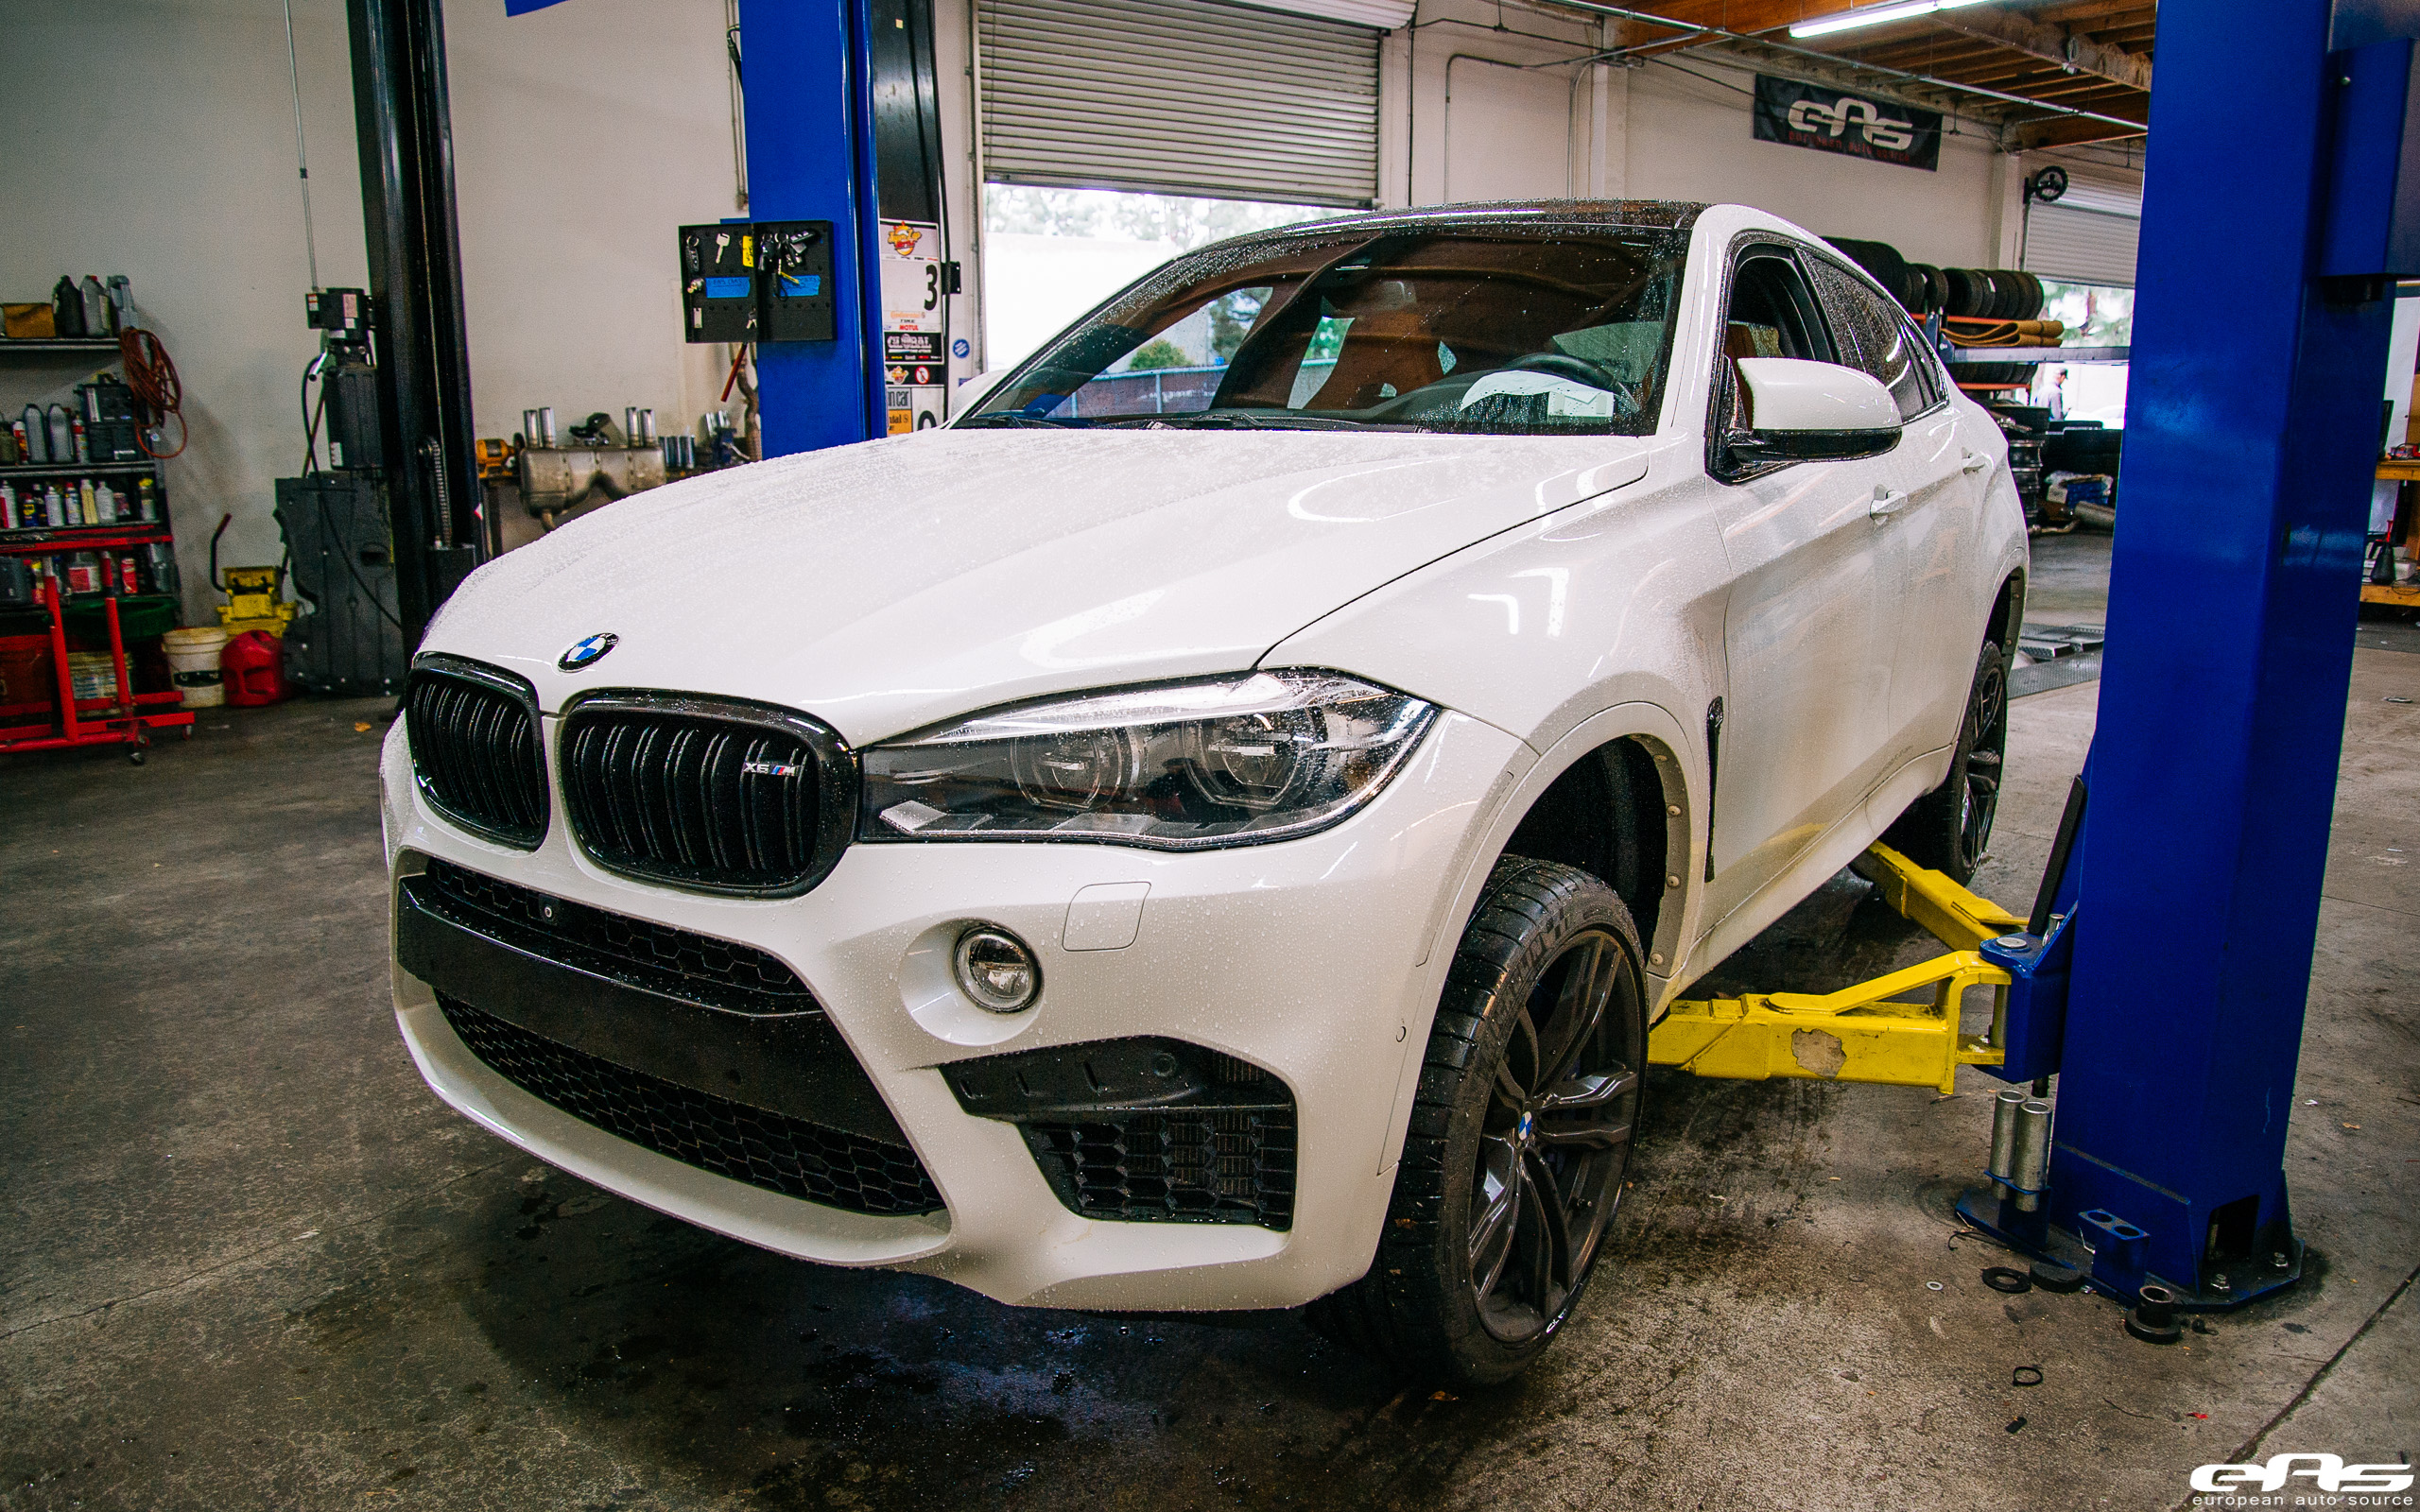 2014 5 bmw x5 m amp x6 m f85 f86 page 5 - Eisenmann Performance Exhaust System Race Sound With 102mm Quad Tips Ind M Performance Front Grille Set Ind M Performance Side Grille Set